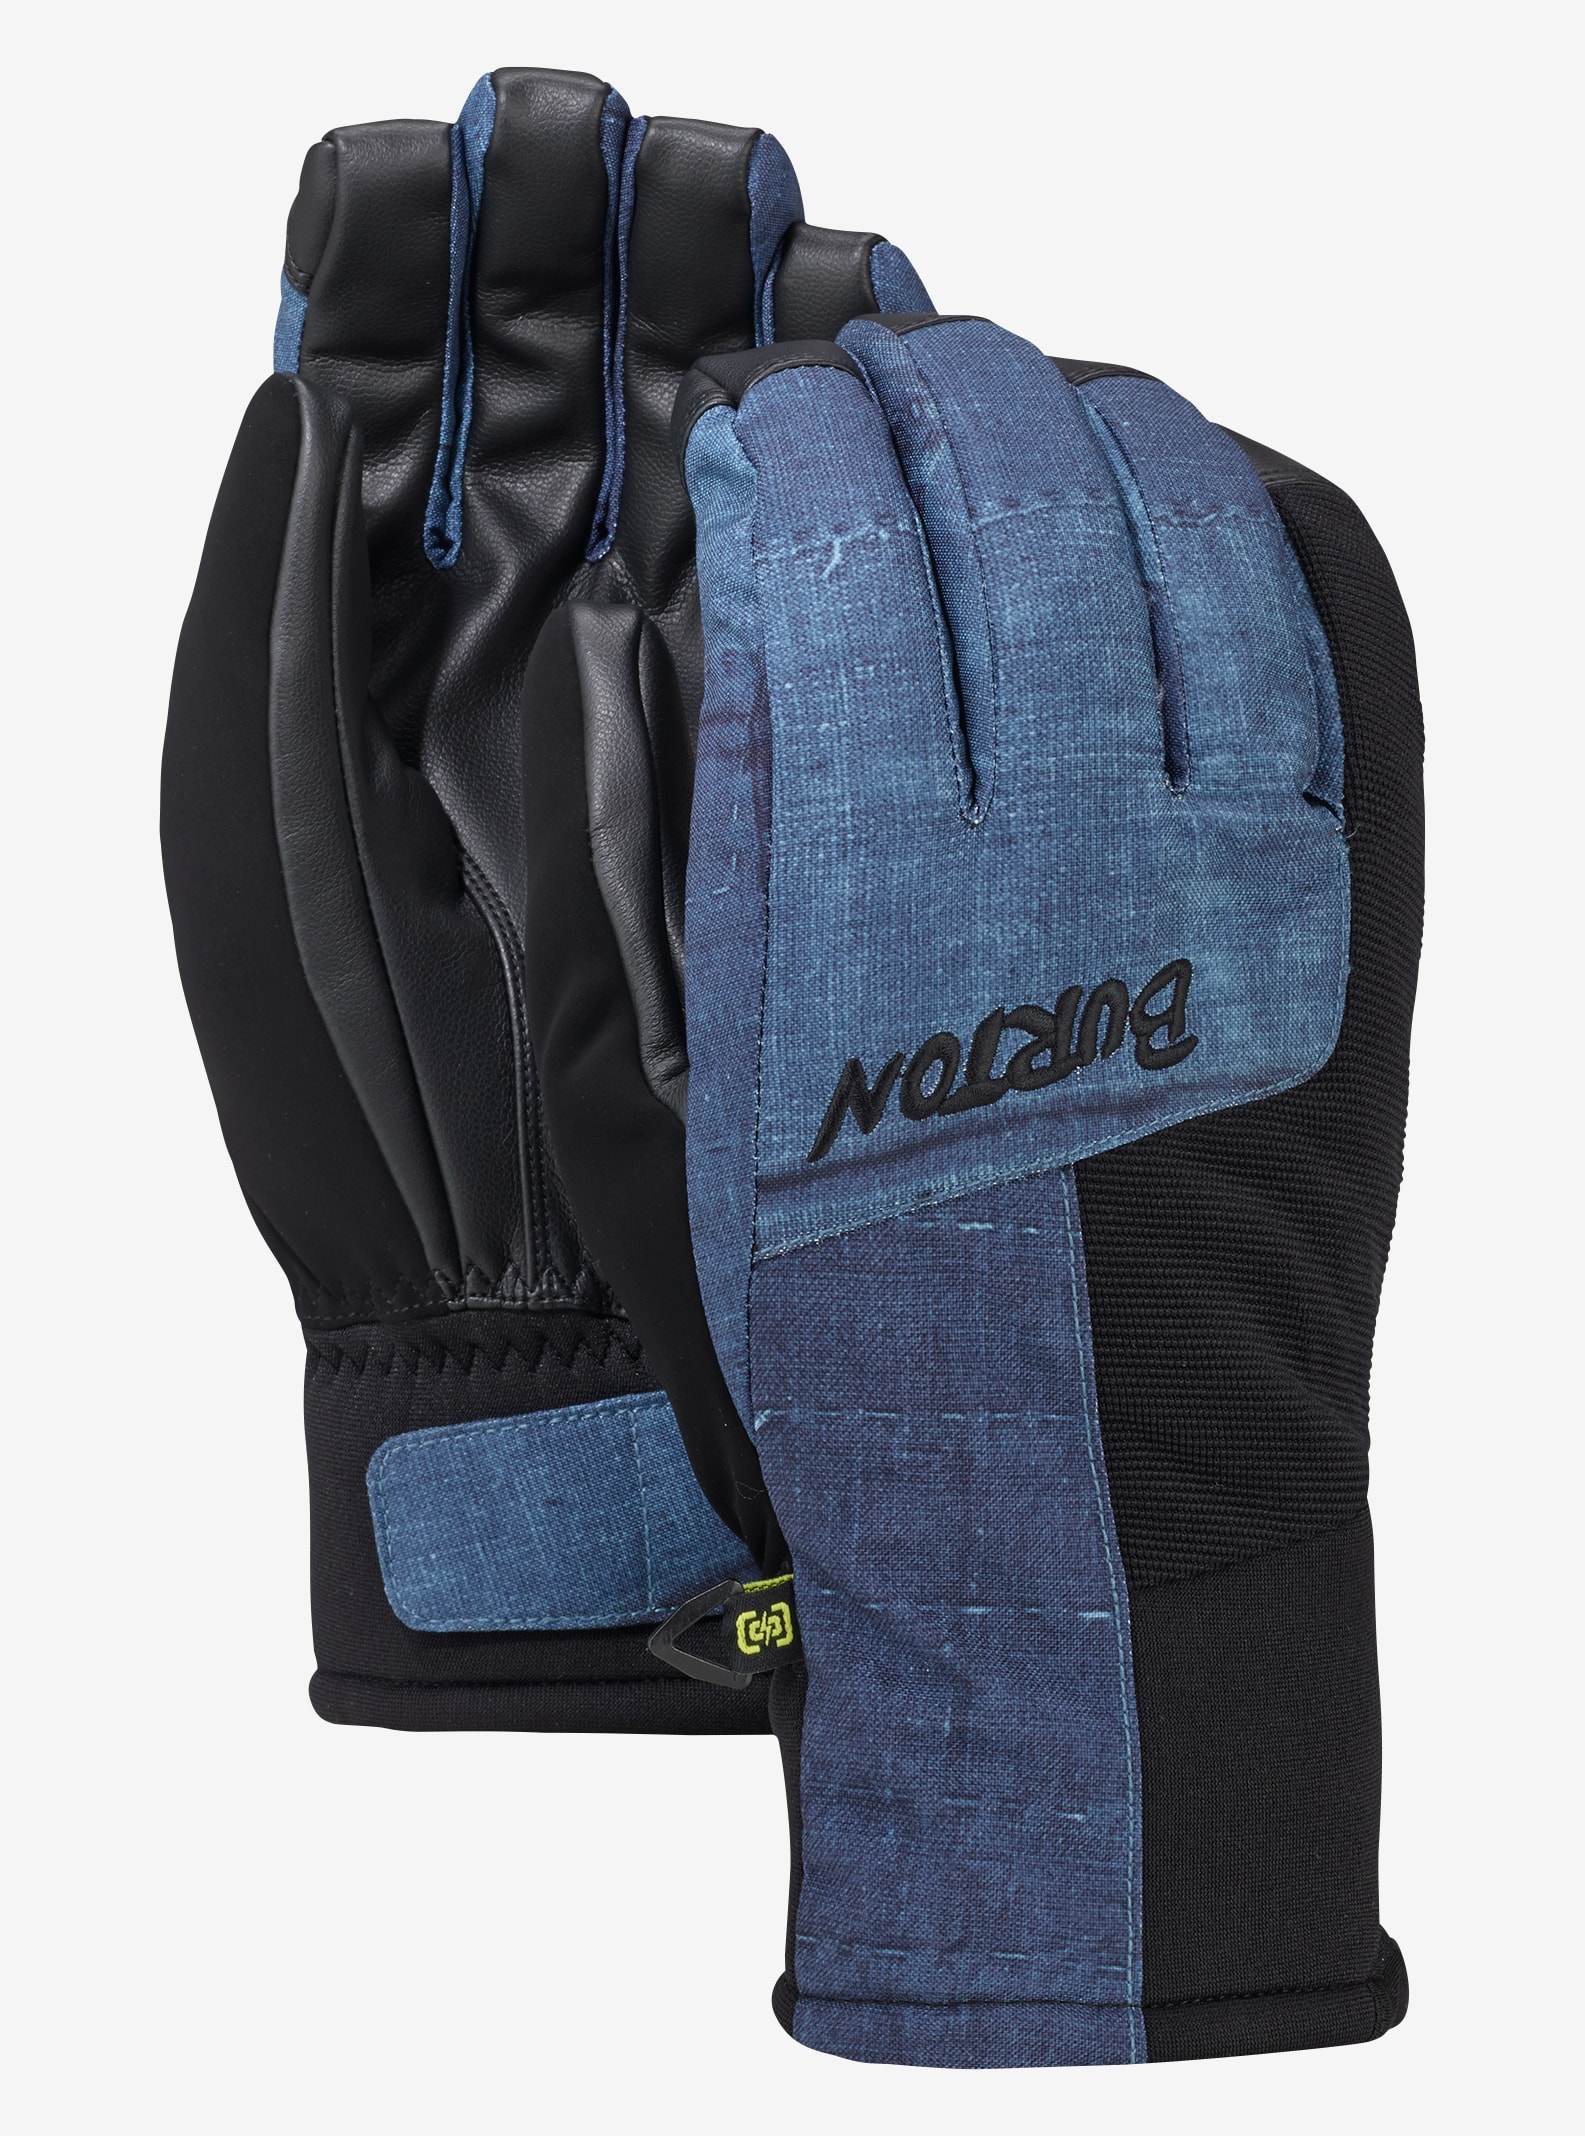 Burton Empire GORE-TEX® Glove shown in Indiohobo